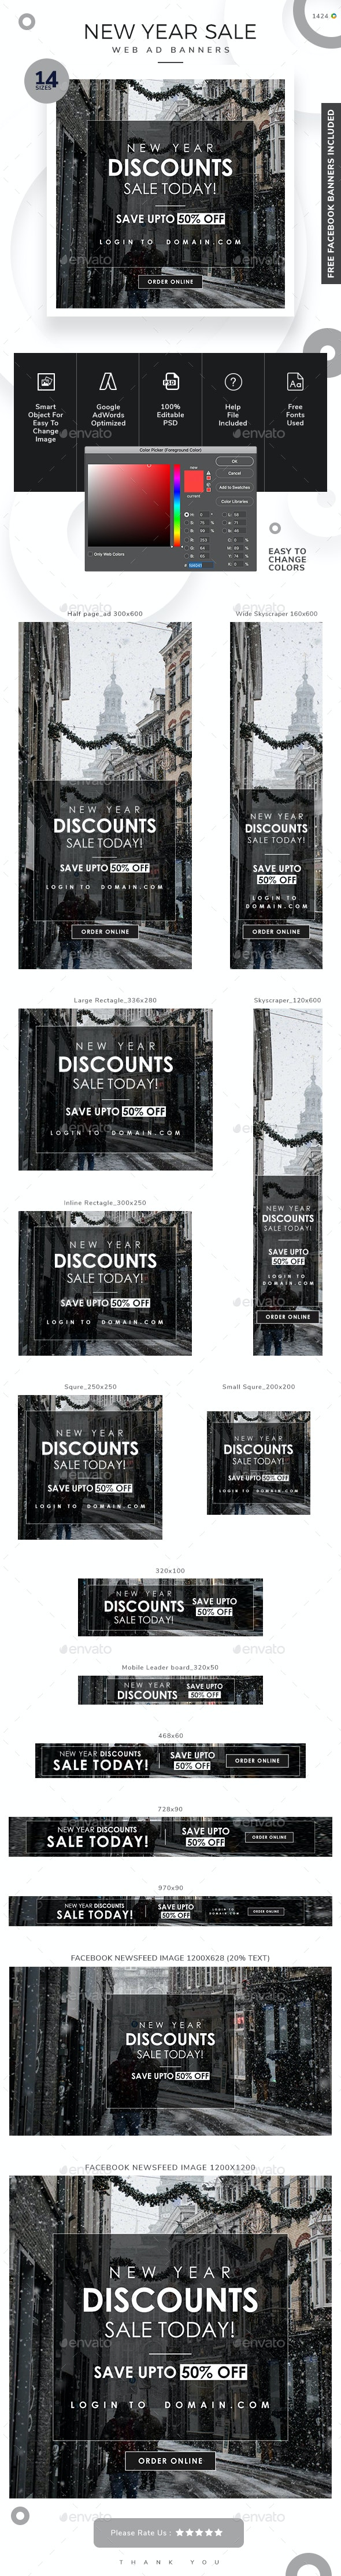 New Year Sale Banner Set - Banners & Ads Web Elements